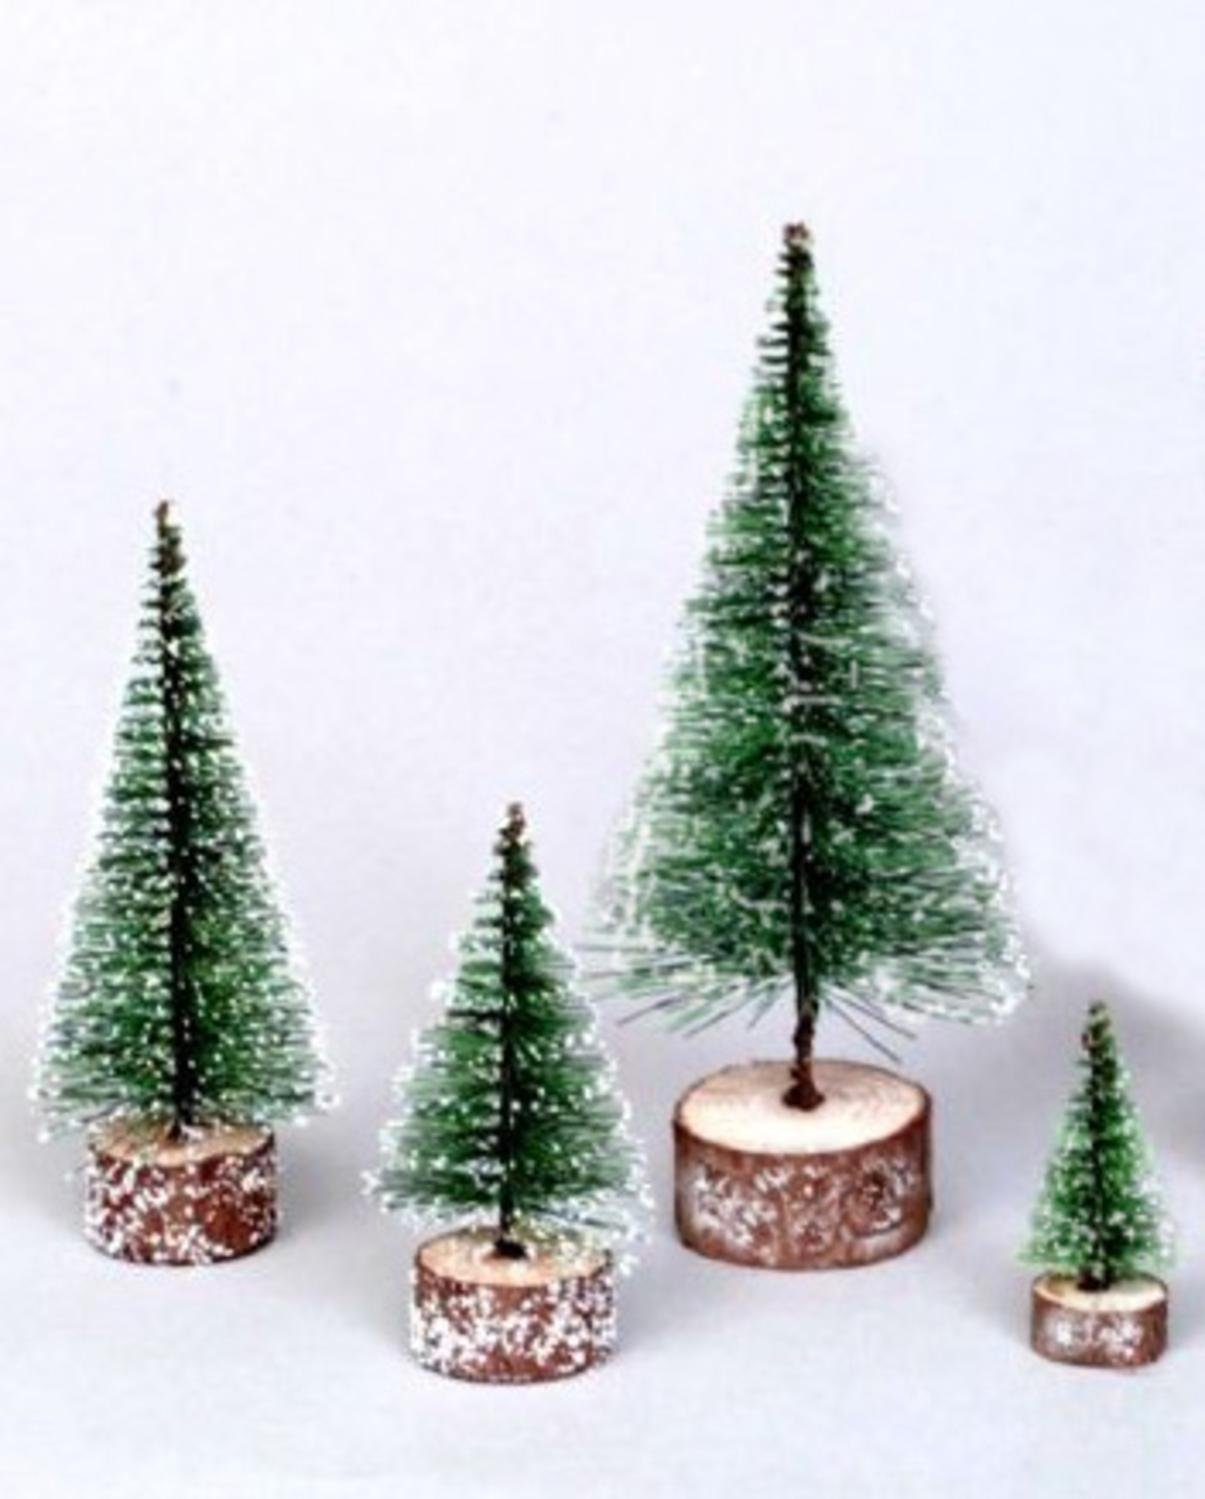 NorthLight 3 in. Green Frosted Artificial Village Christmas Trees - Unlit Vickerman